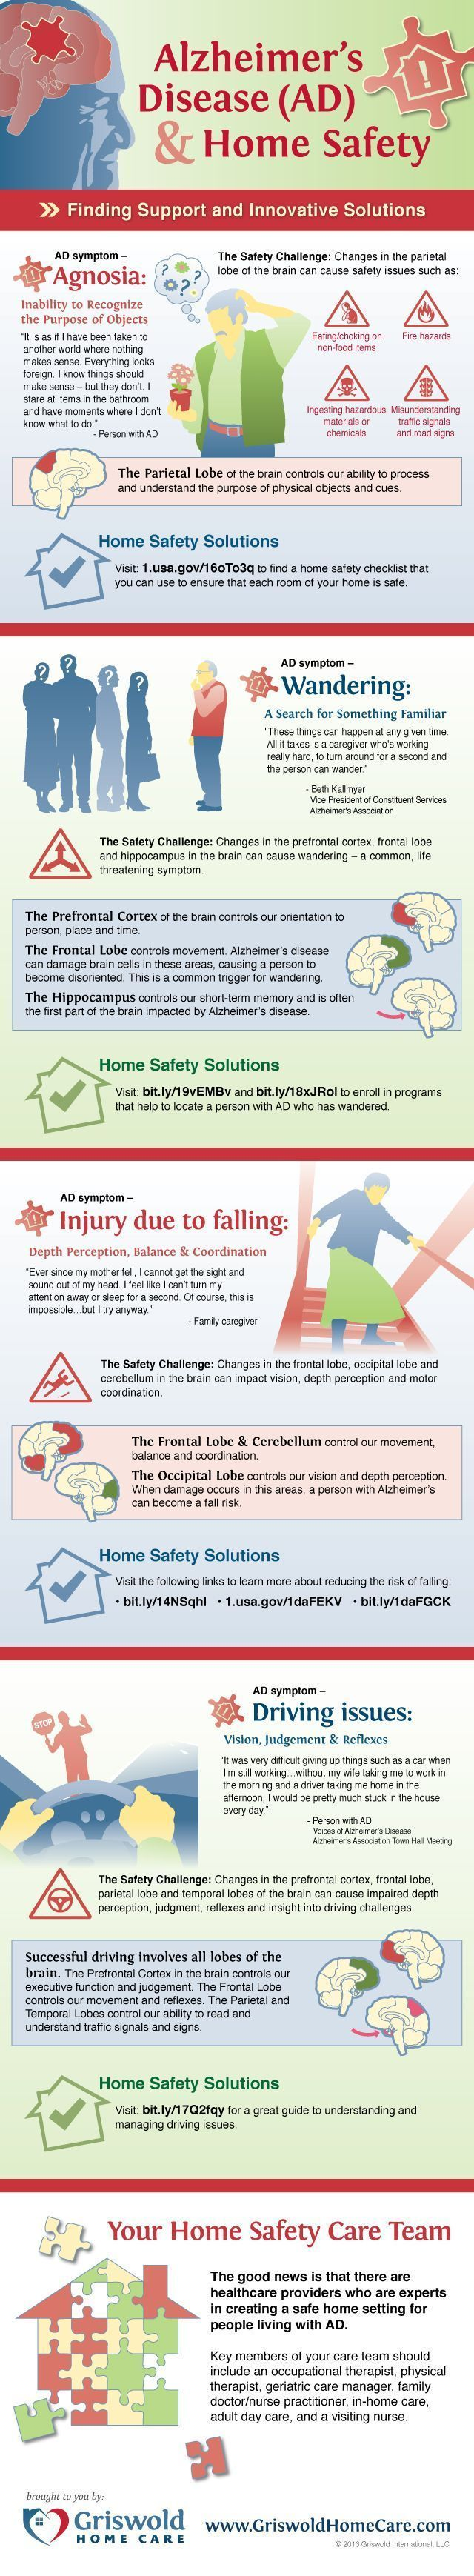 To celebrate National Safe at Home Week, Griswold Home Care has developed a visual snapshot of the common, yet serious safety issues that impact people with Alzheimer's Disease and their families / professional caregivers. #alzheimers #tgen www.mindcrowd.org/?utm_content=buffer051be&utm_medium=social&utm_source=pinterest.com&utm_campaign=buffer #dementiacare #homeschoolinginfographic